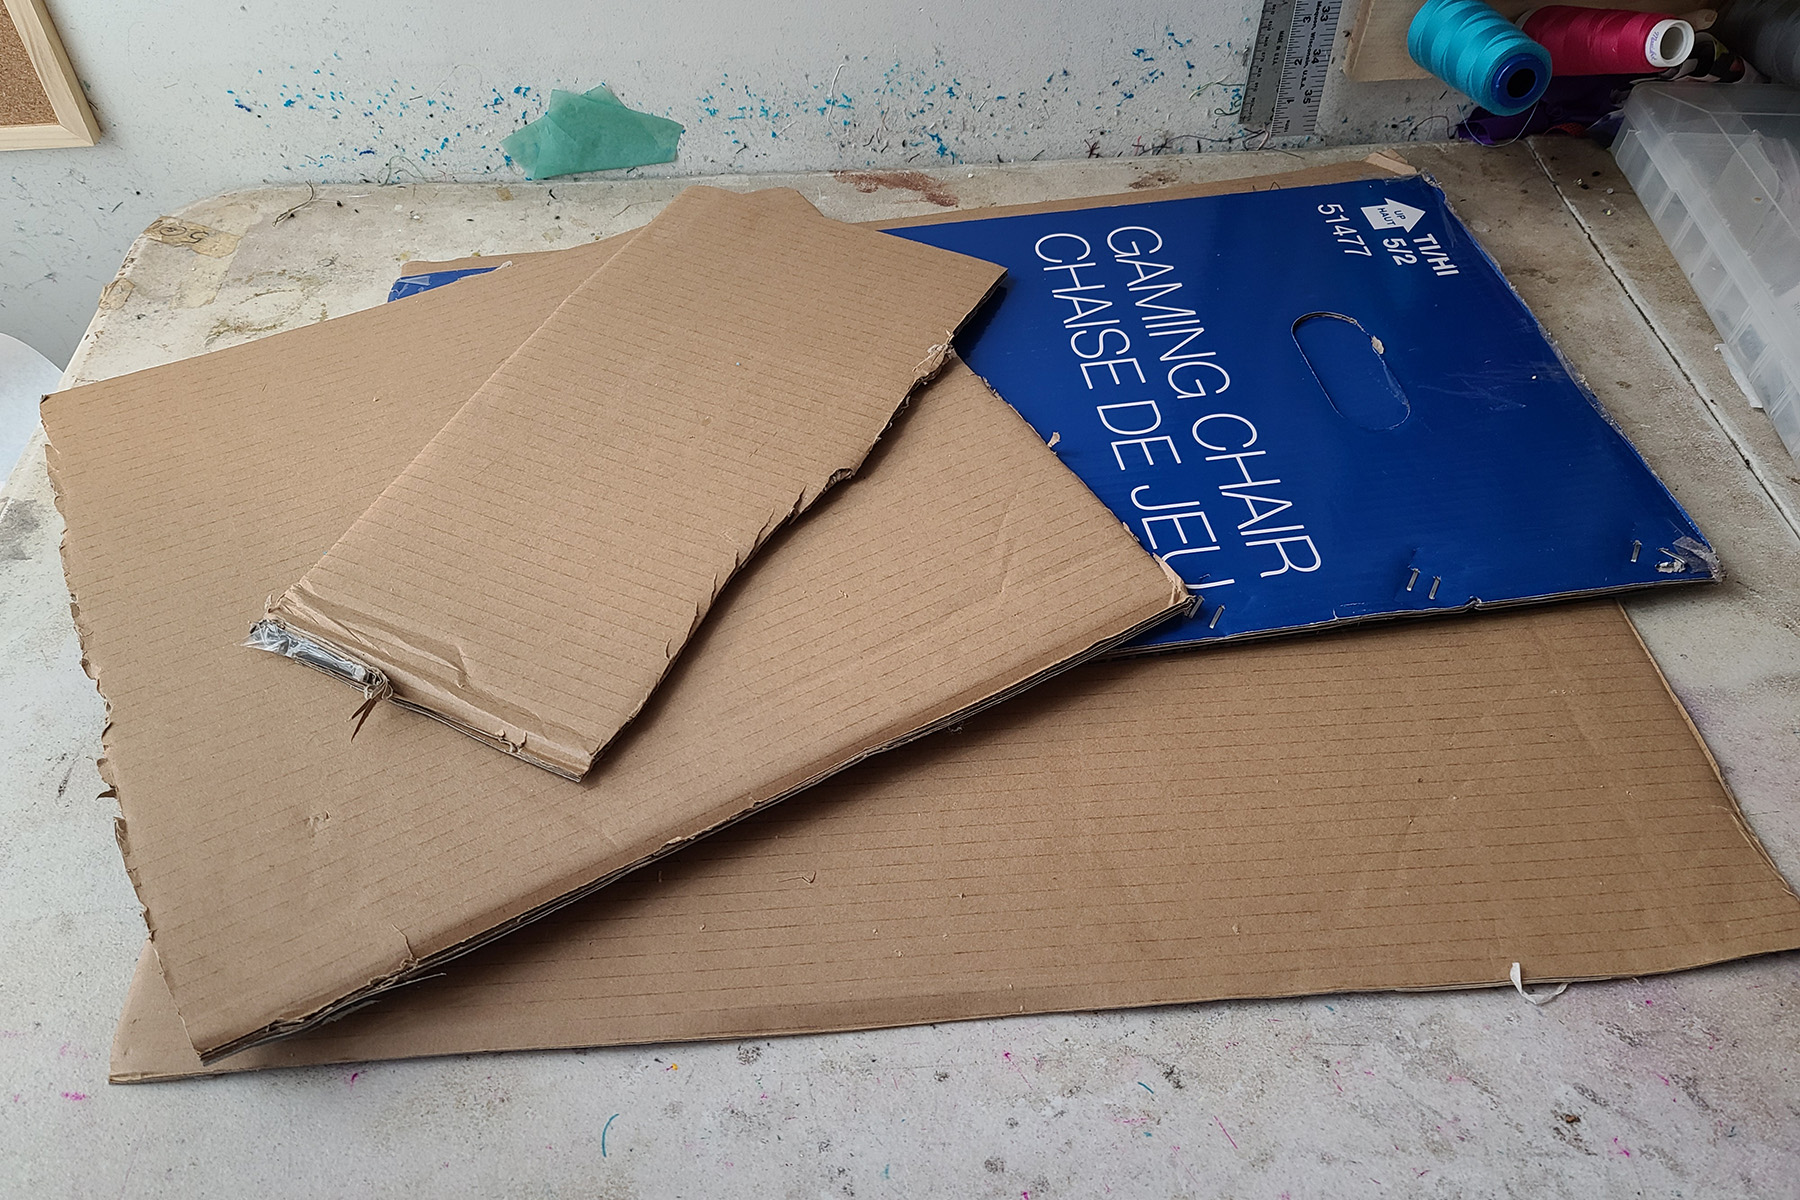 A small pile of large rectangles of thick cardboard. One piece is blue, and indicates it was an office chair box.